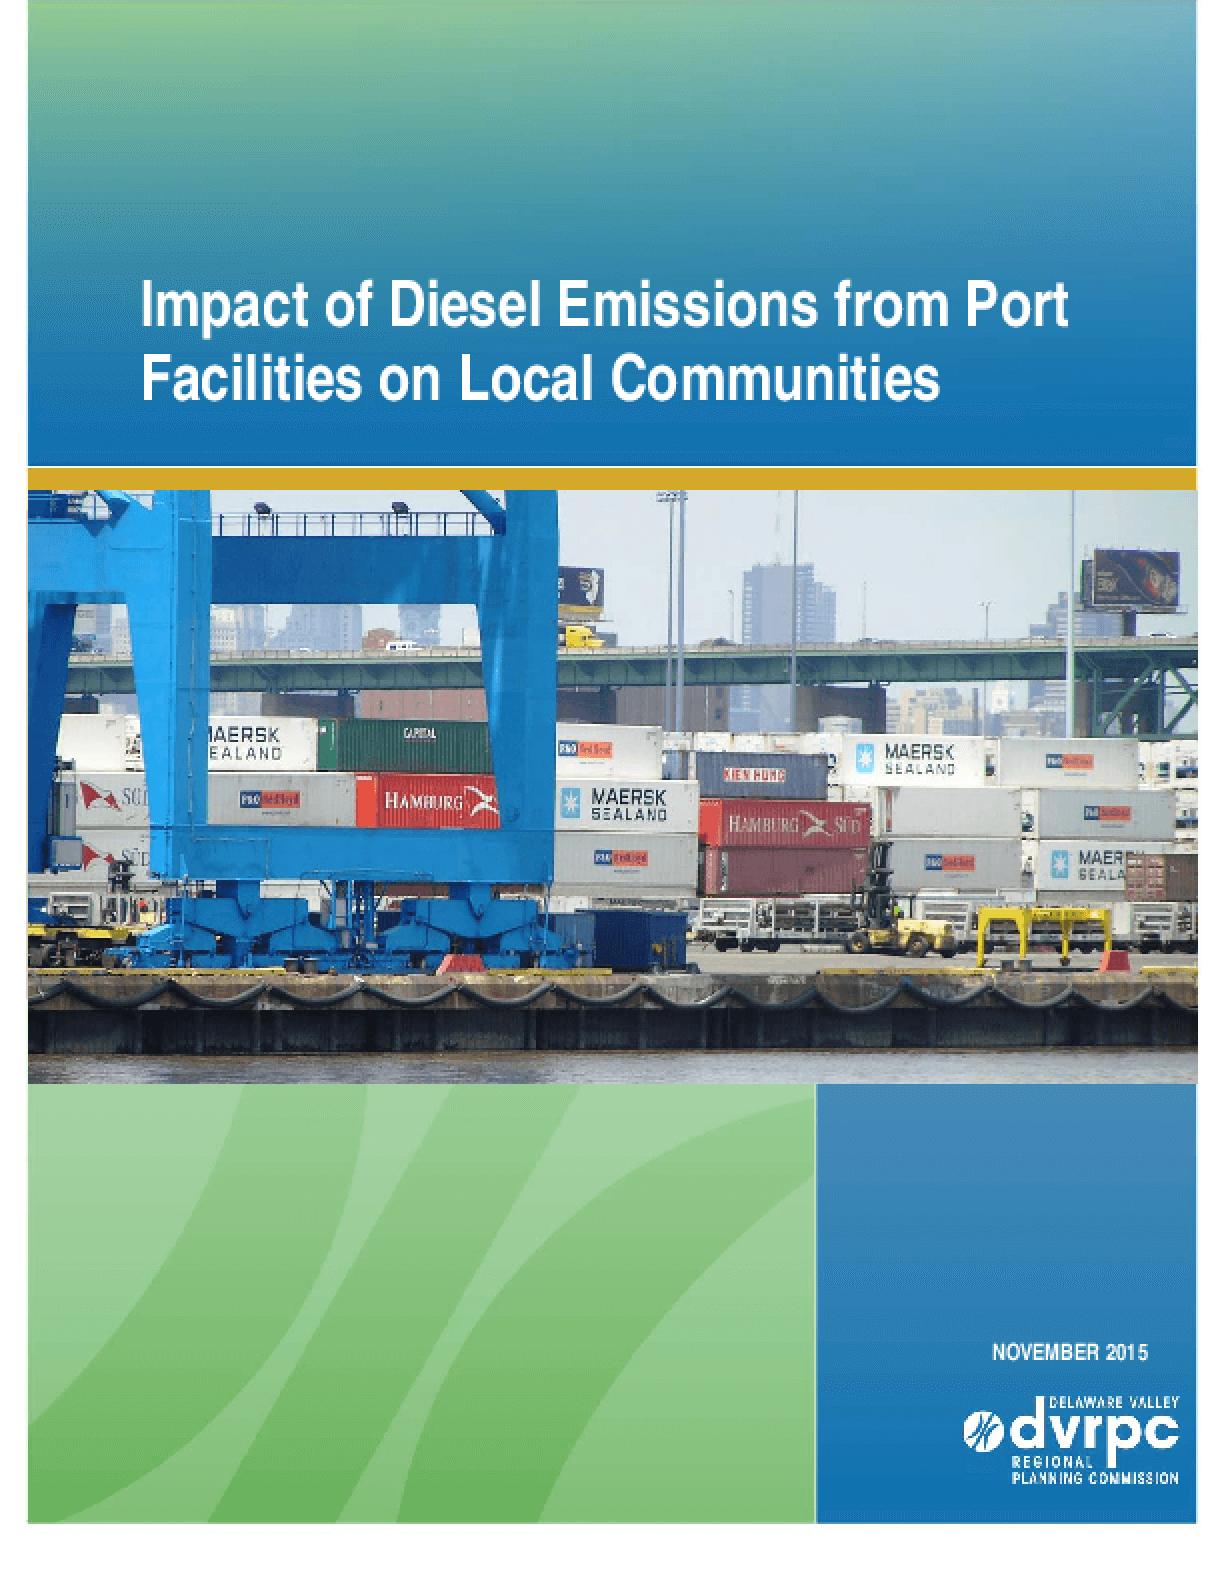 Impact of Diesel Emissions from Port Facilities on Local Communities in the DVRPC Region